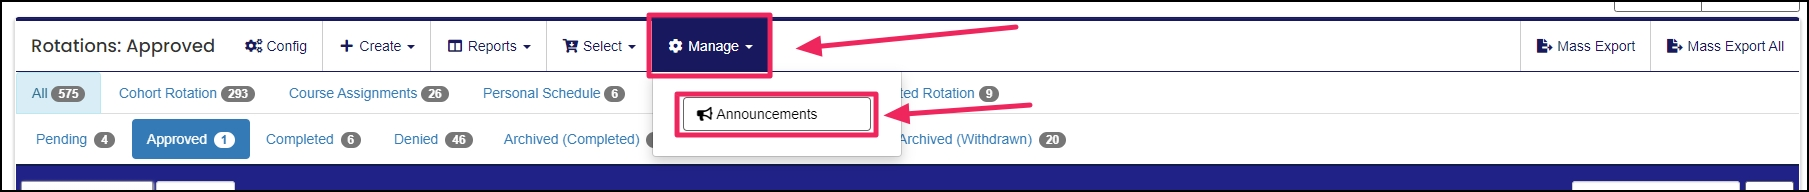 image shows manage tab and announcement drop down